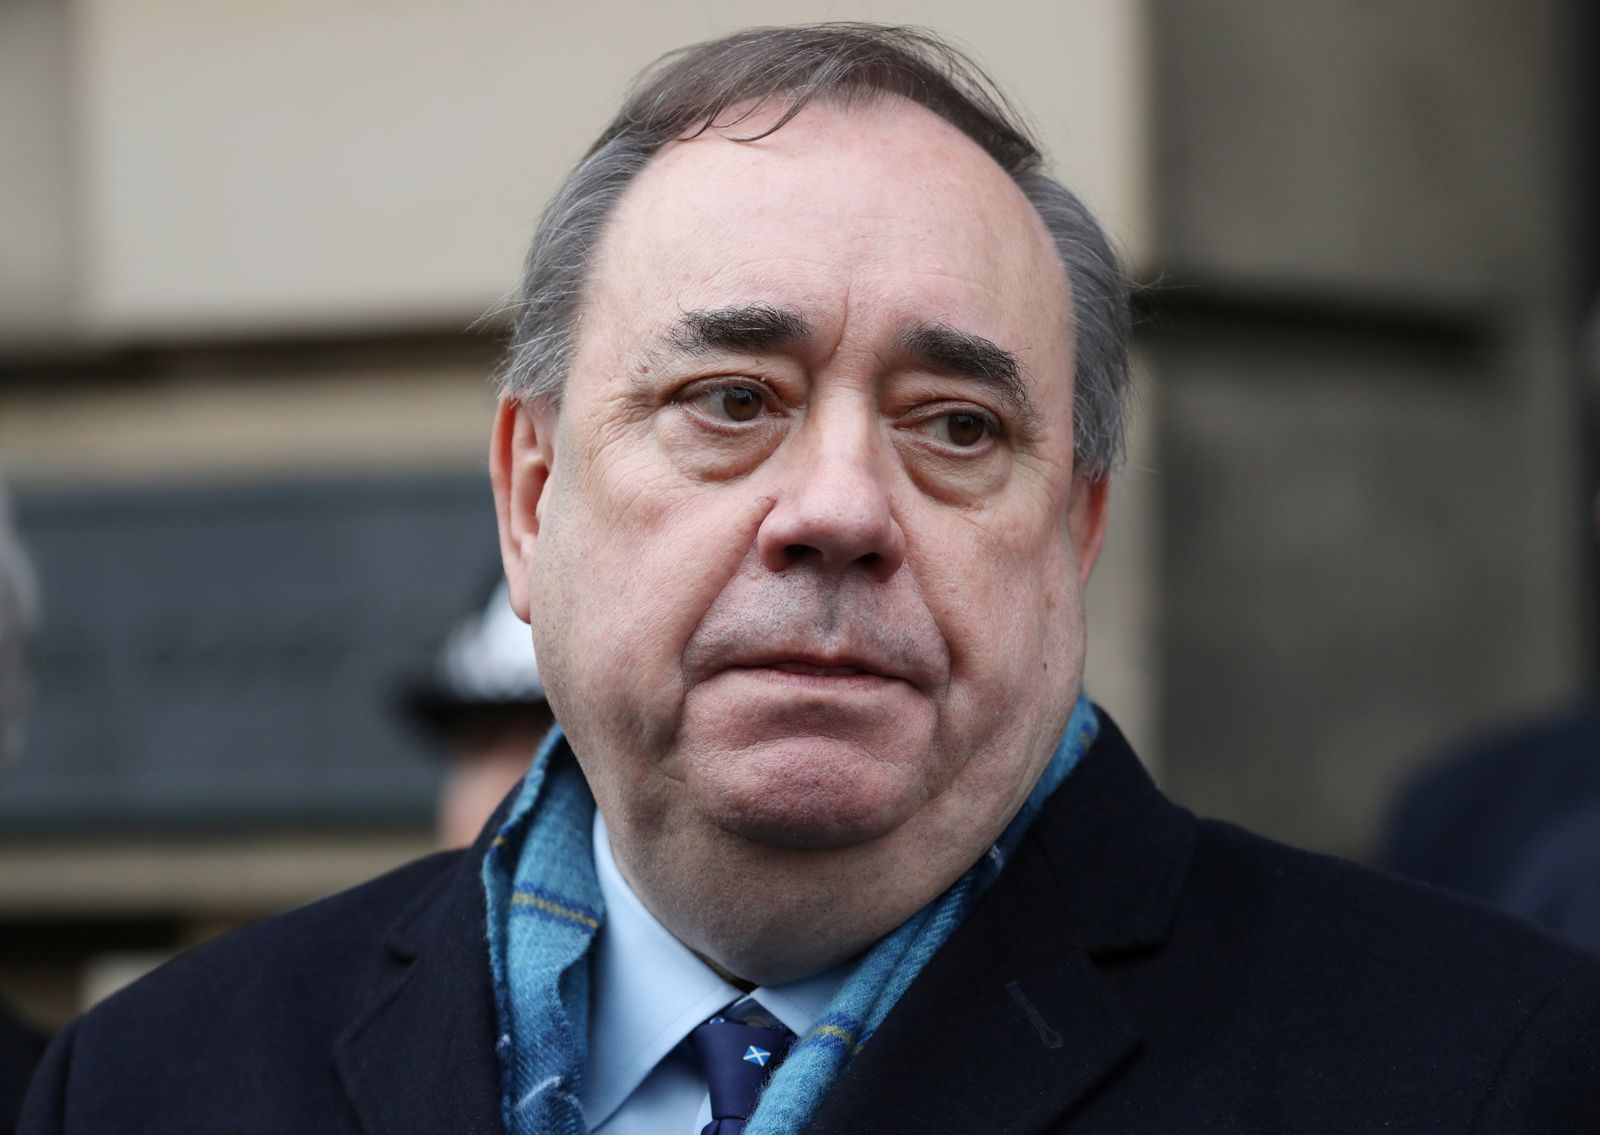 Former First Minister of Scotland Alex Salmond leaves the High Court in Edinburgh